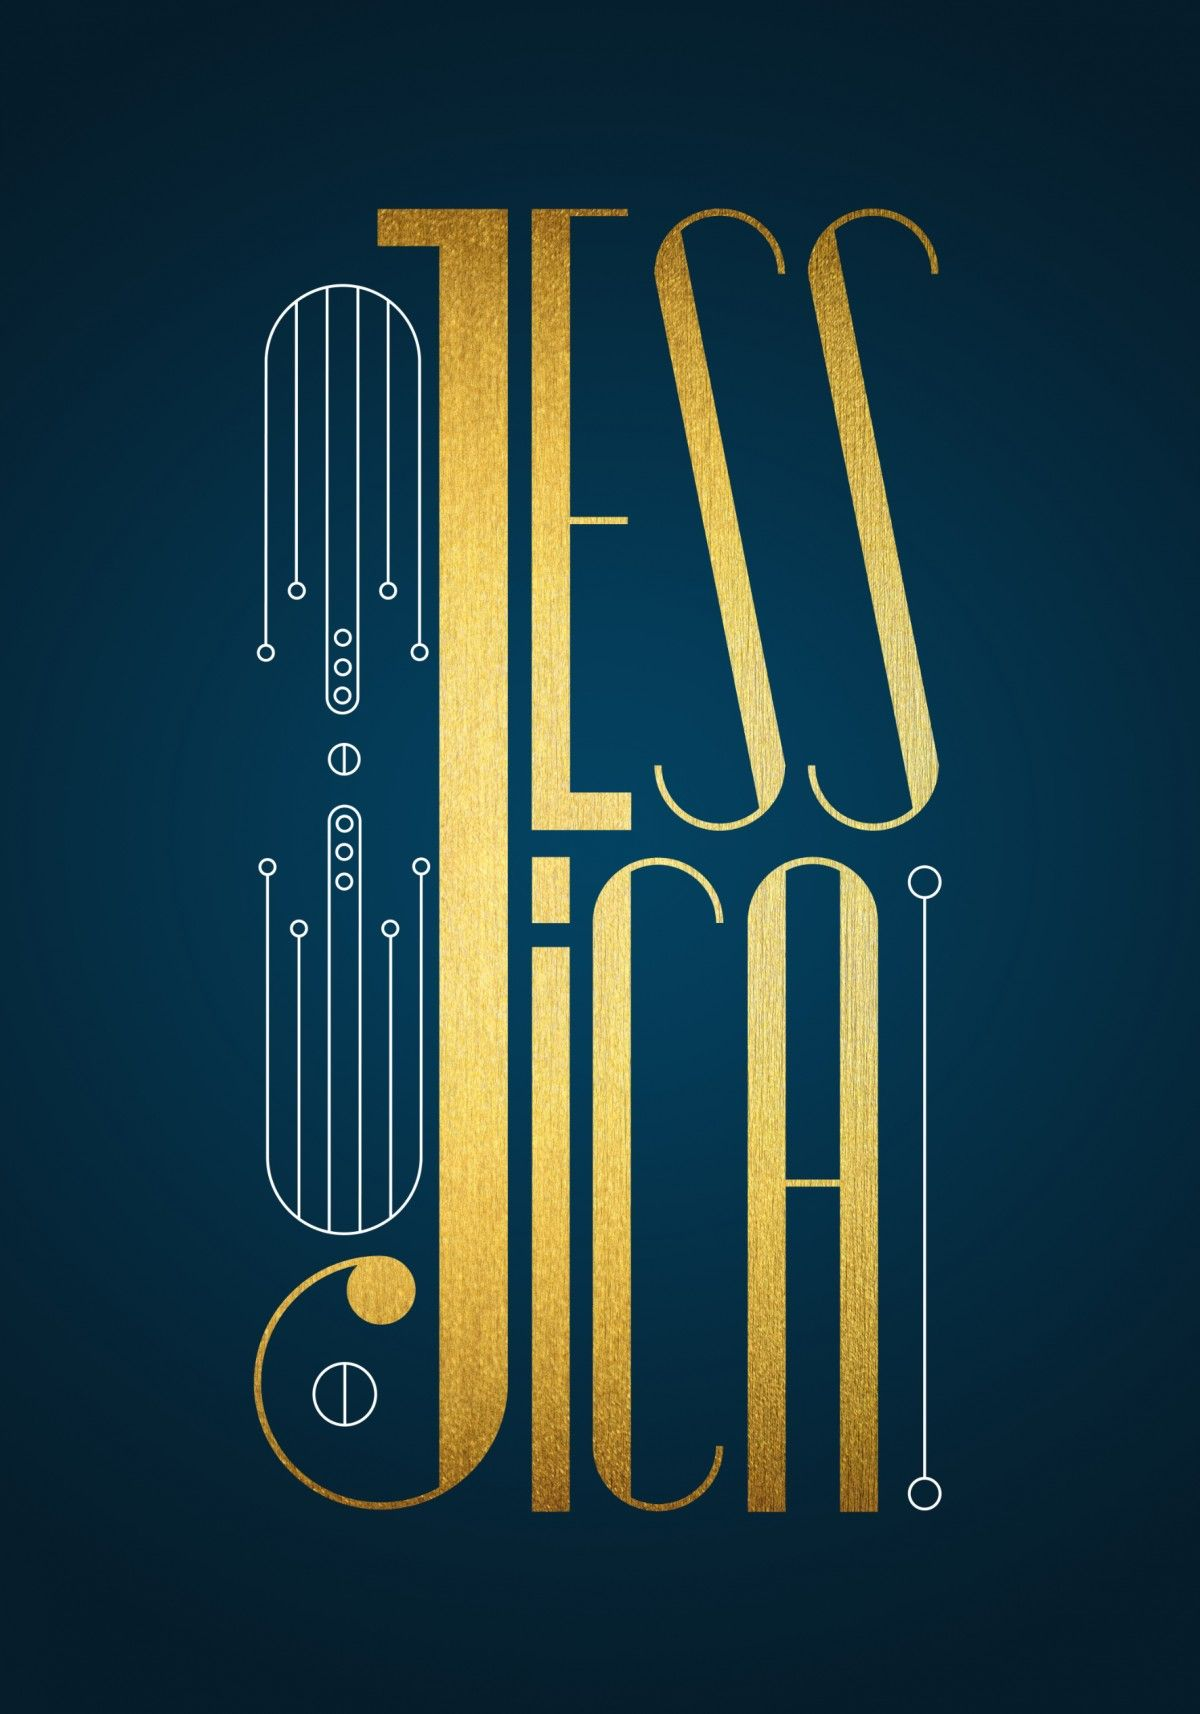 Jessica lettering by timone